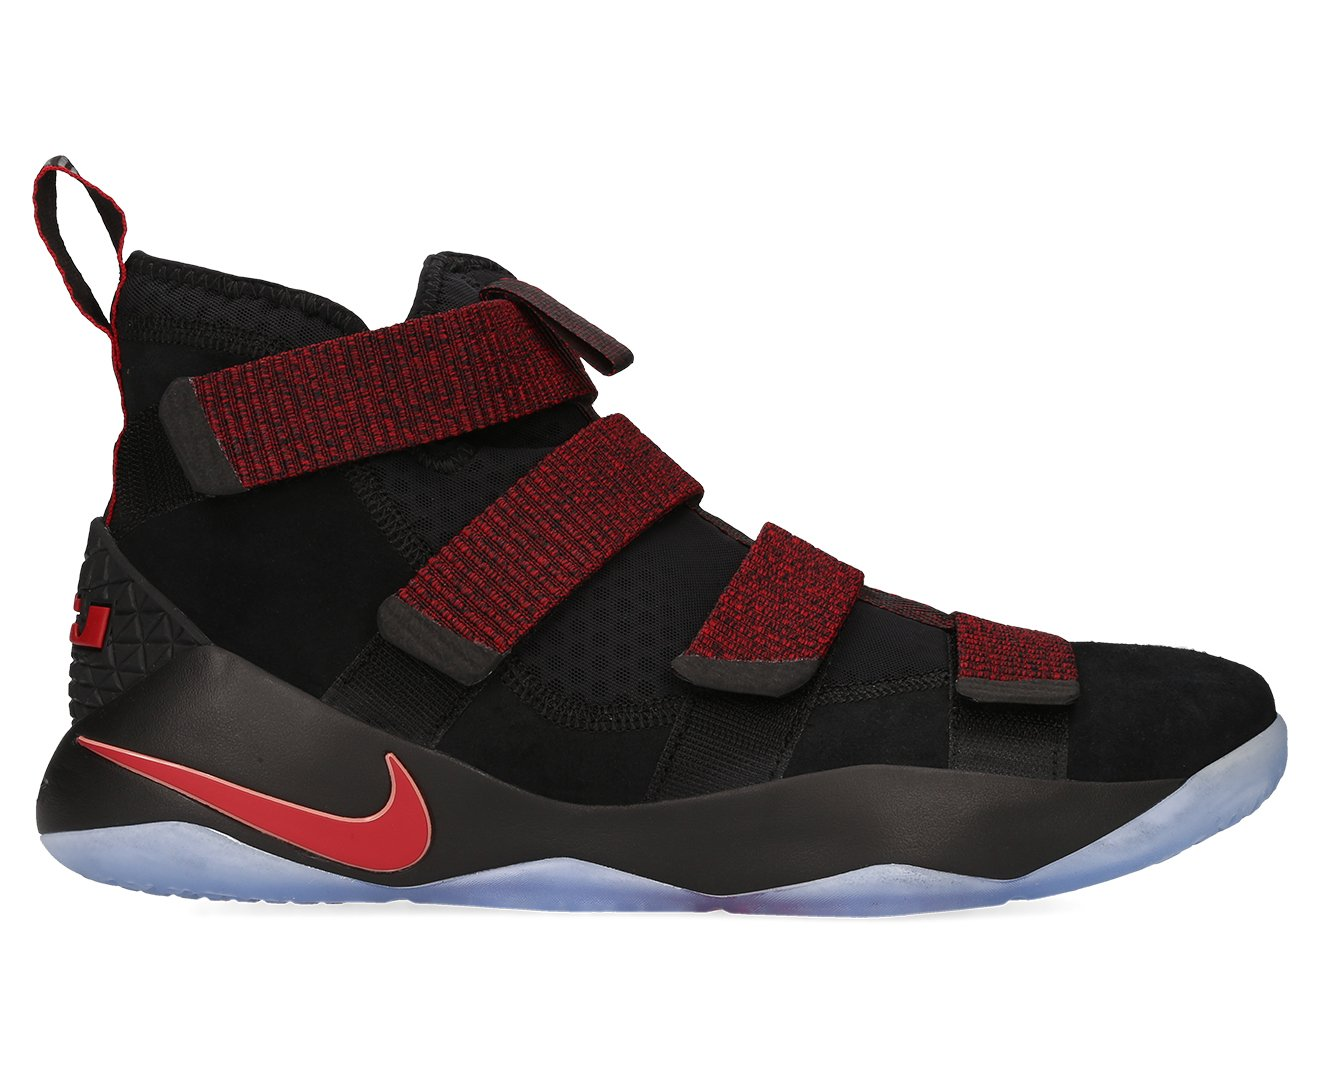 6813eb4b582 Galleon - Nike Men s Lebron Soldier XI Shoe Black Team Red Size 10.5 M US